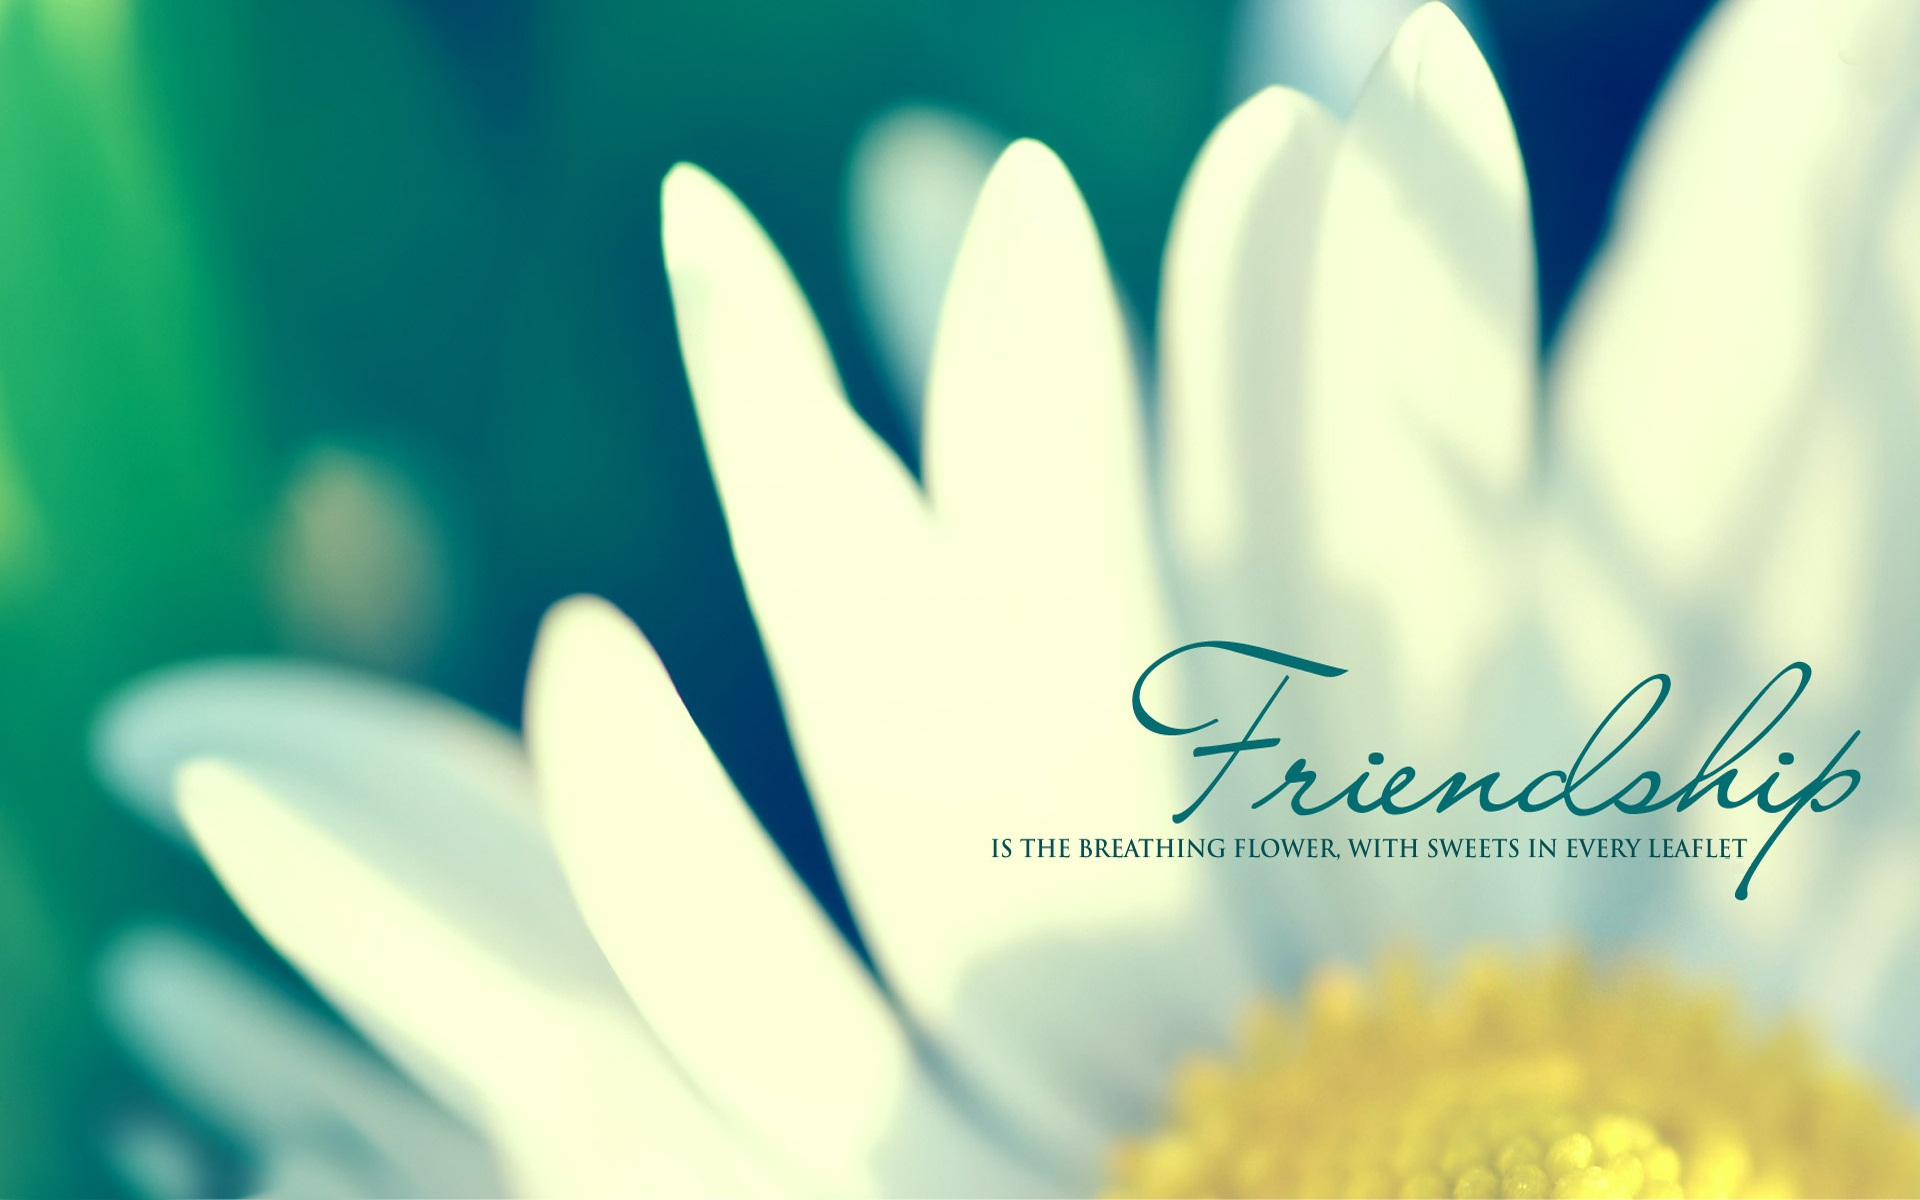 Friendship Quotes Desktop Backgrounds - Wallpaper, High Definition, High Quality, Widescreen